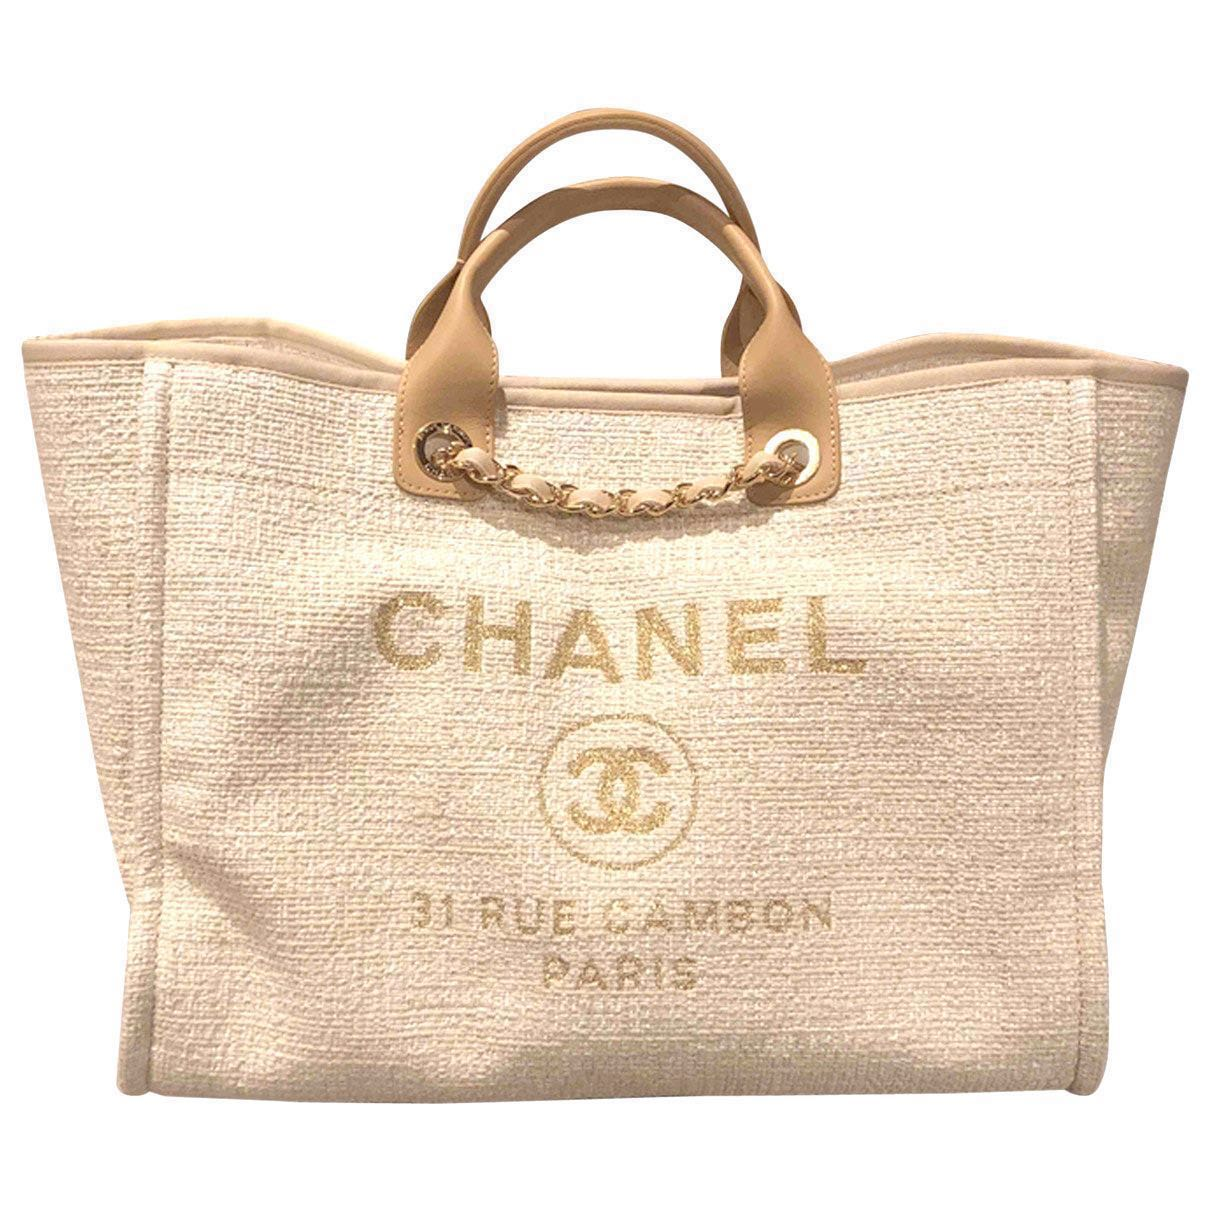 edadc95fc50c New Chanel Tote 2018 | Stanford Center for Opportunity Policy in ...